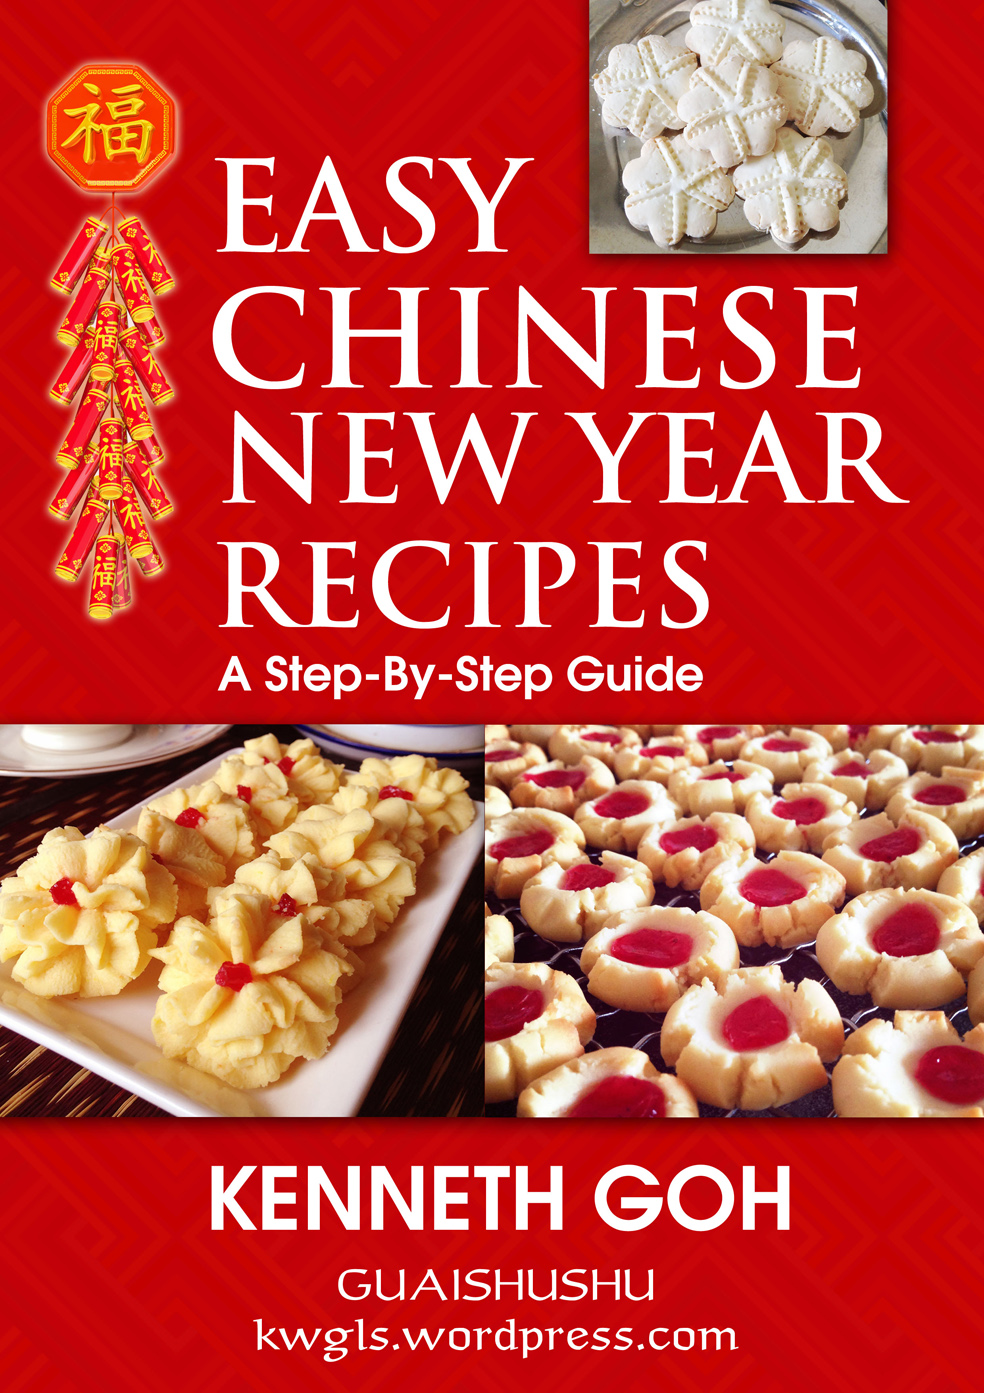 recipes step by step instructions